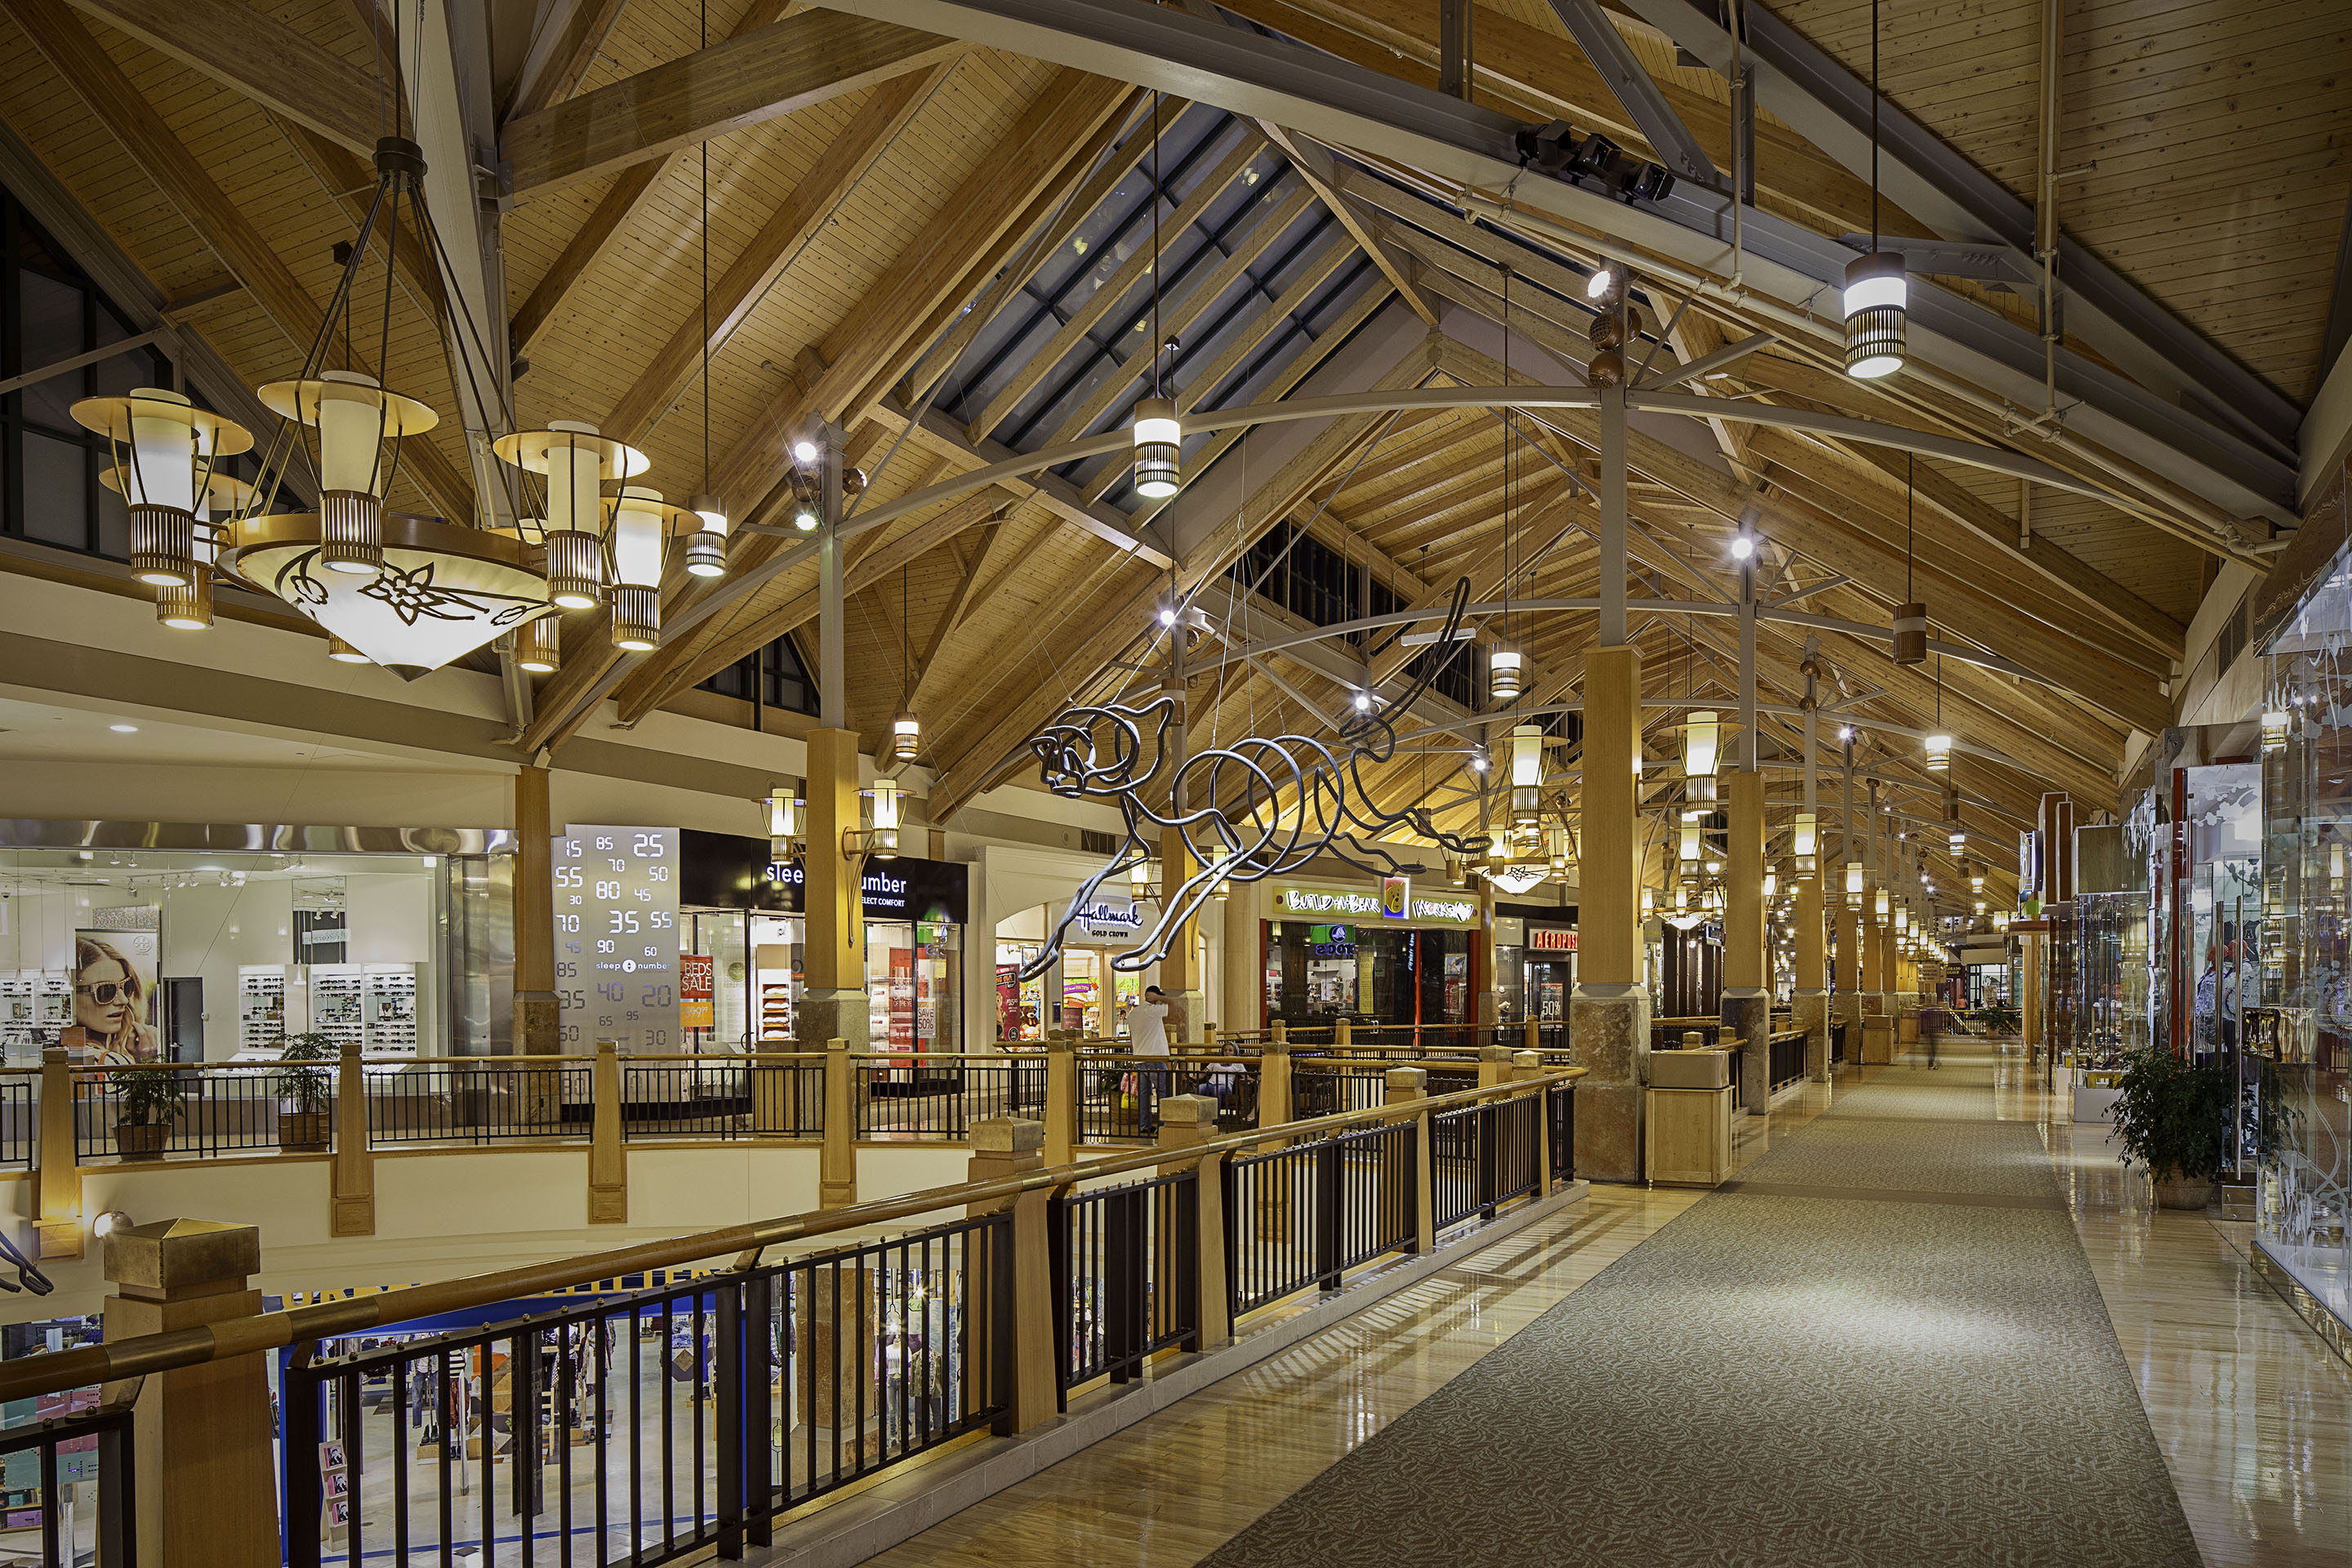 The interior of a Park Meadows walkway displays a variety of store fronts with lights and decor hanging from the ceiling.